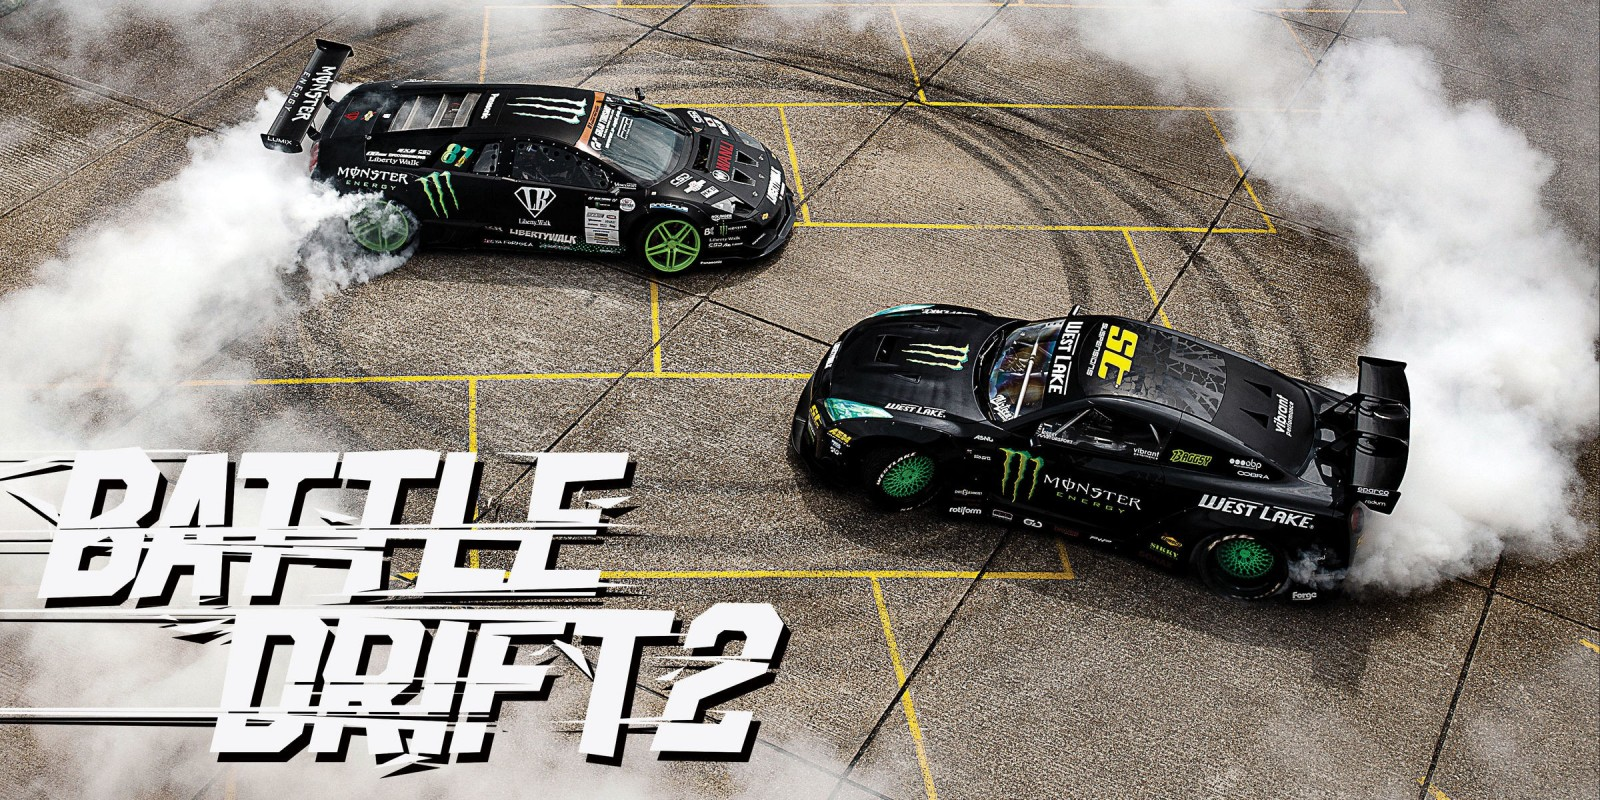 Web Images for Battledrift 2 project